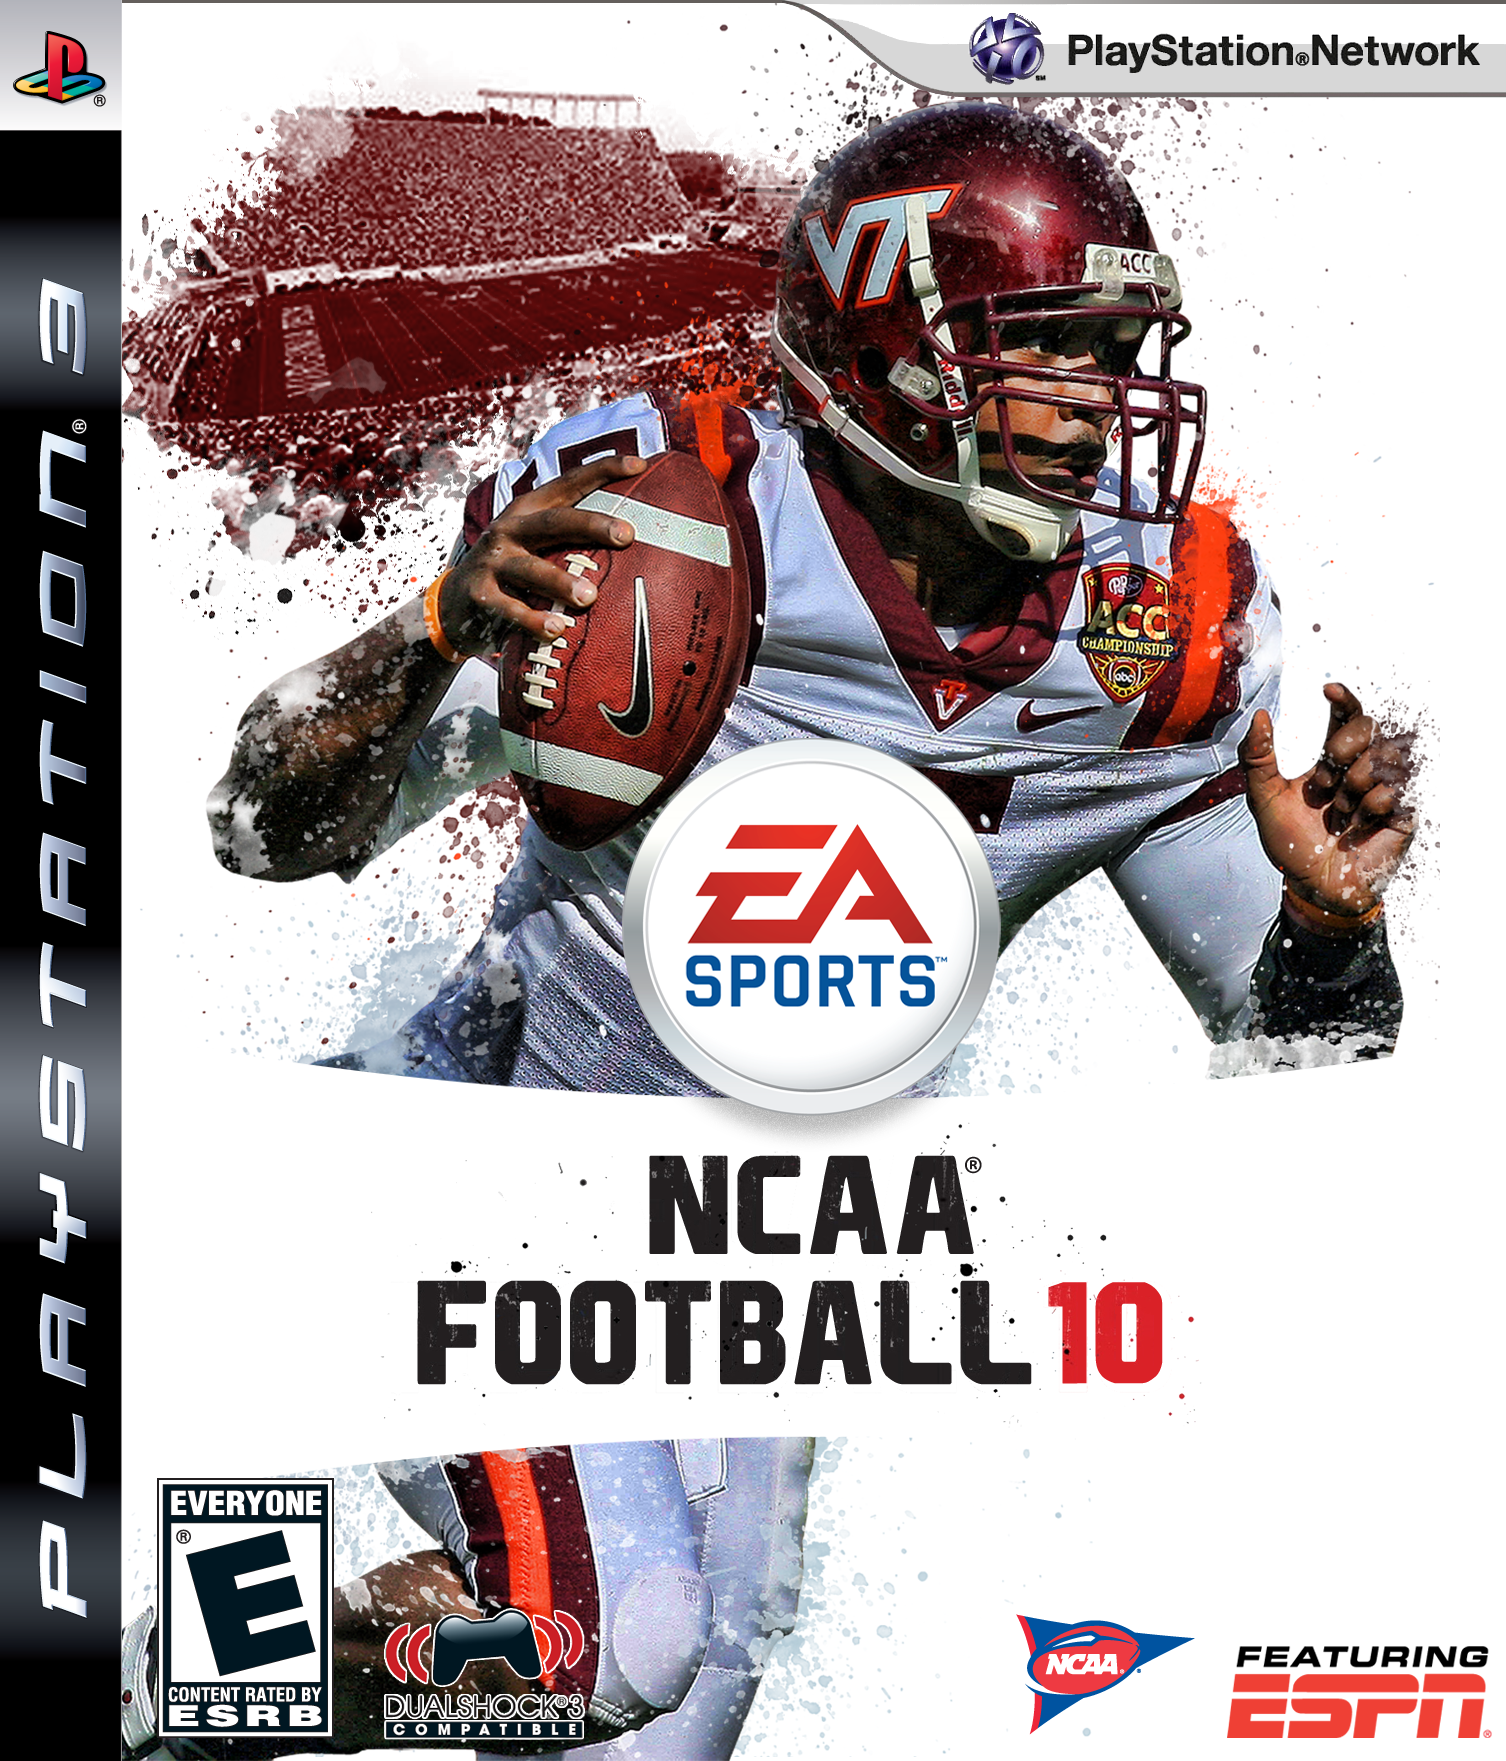 NCAA Football 10 Custom Cover Gallery and Template - Page ...